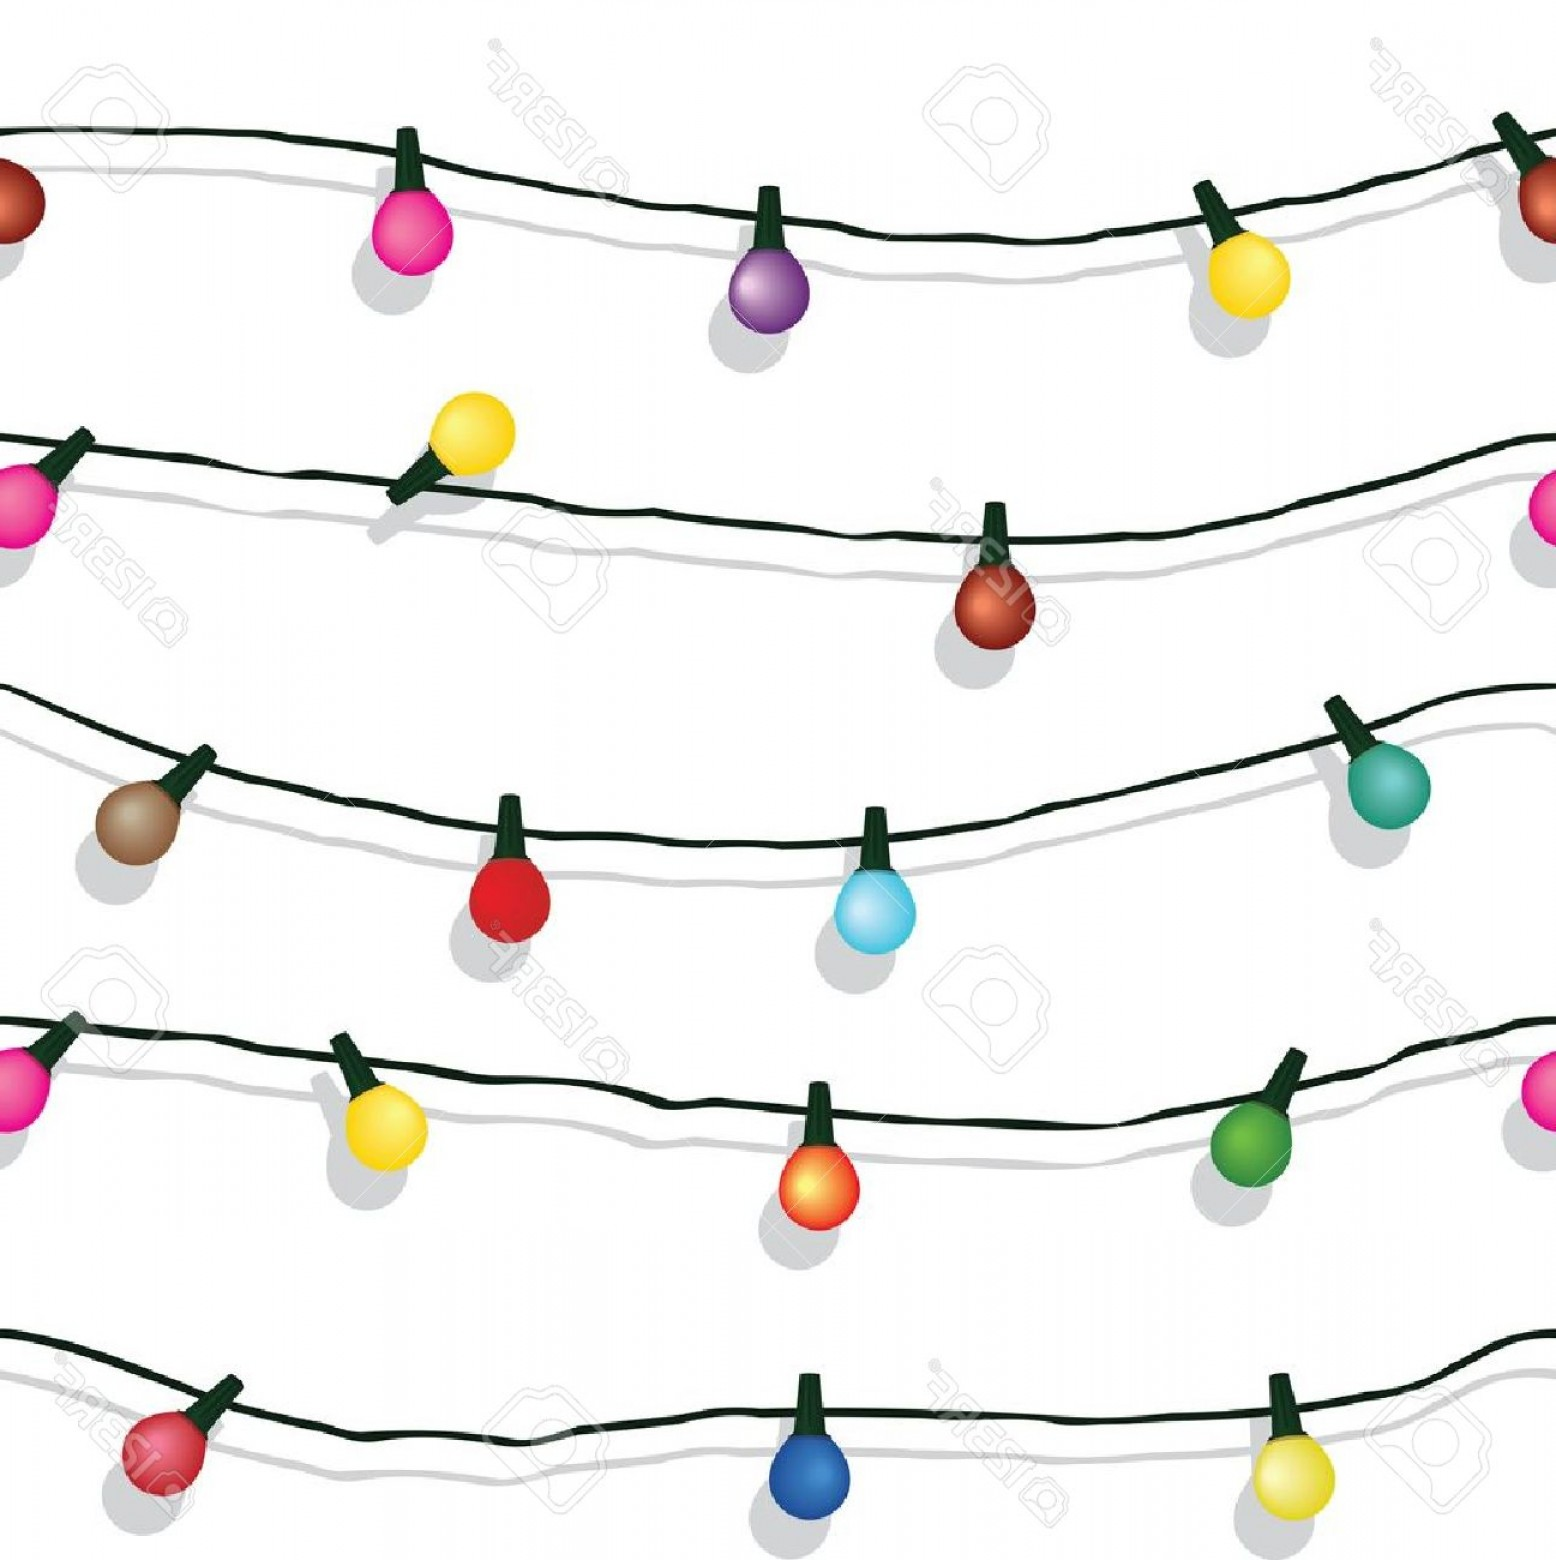 Christmas Light String Clip Art Vector: Photoseamless String Of Christmas Lights On Garland Background Isolated On White